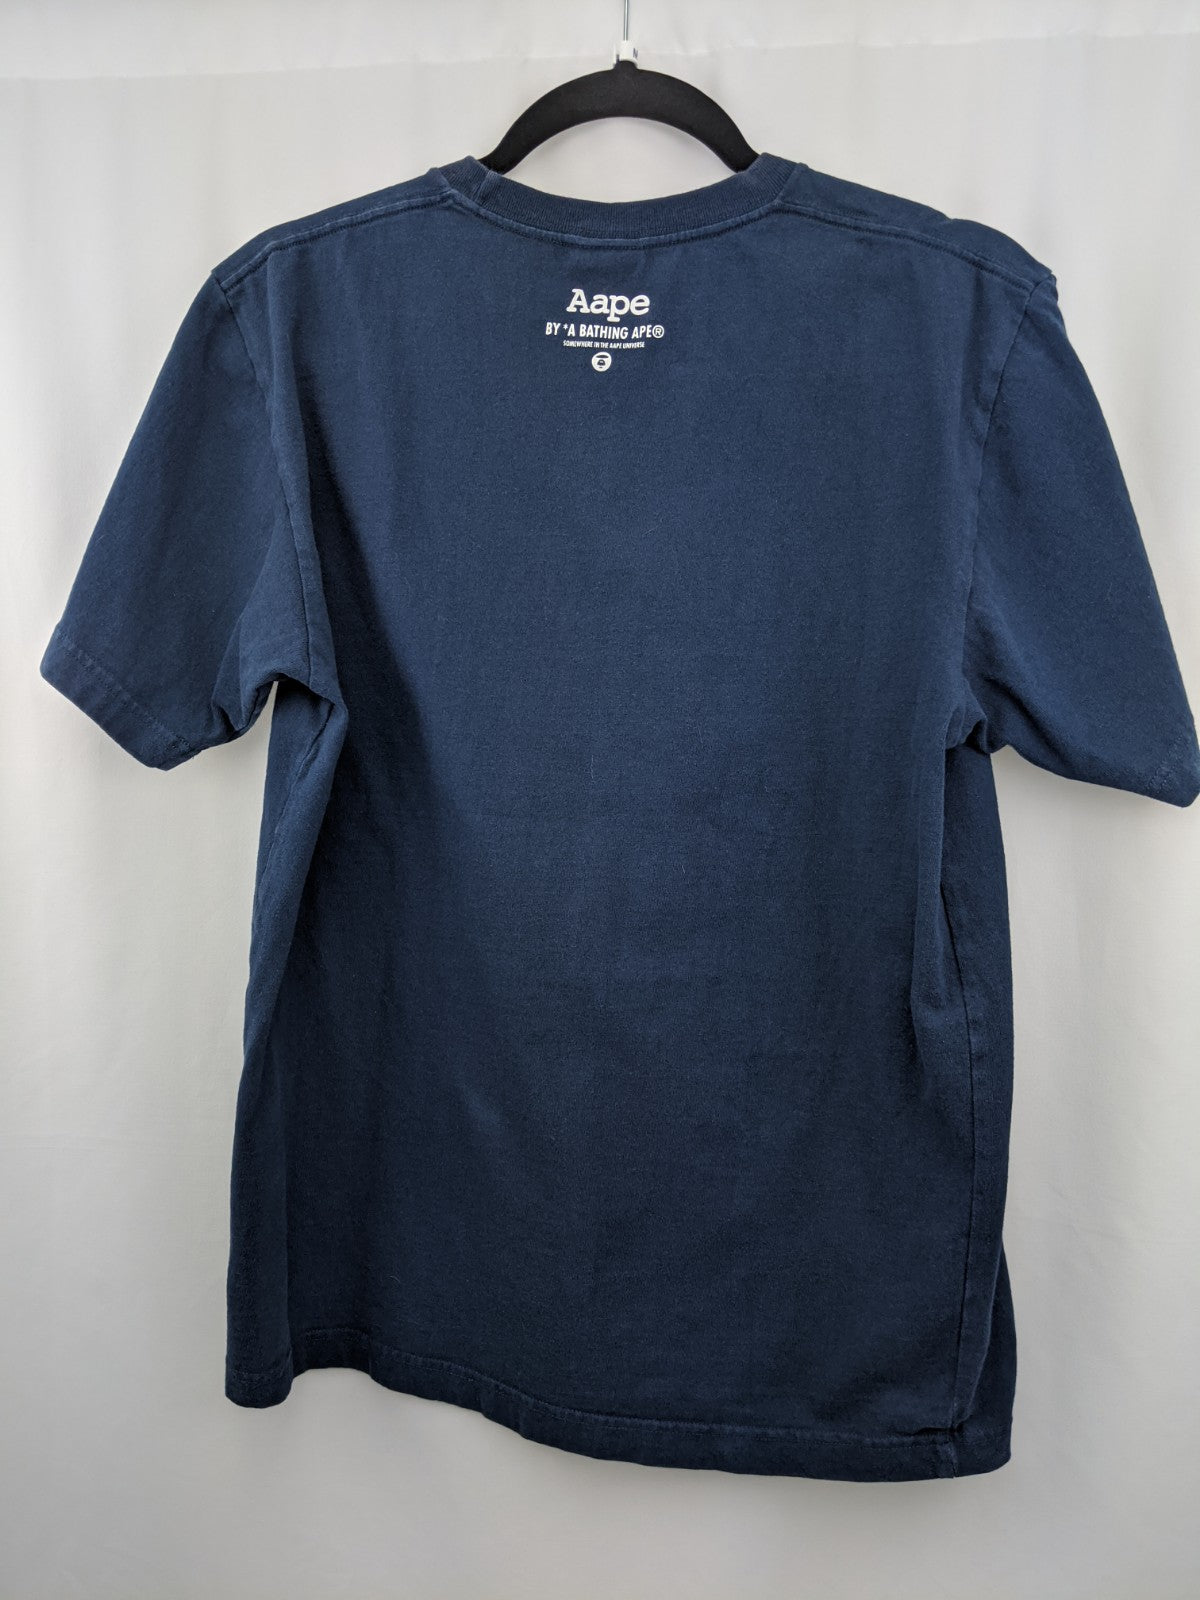 Aape Now Navy Tee